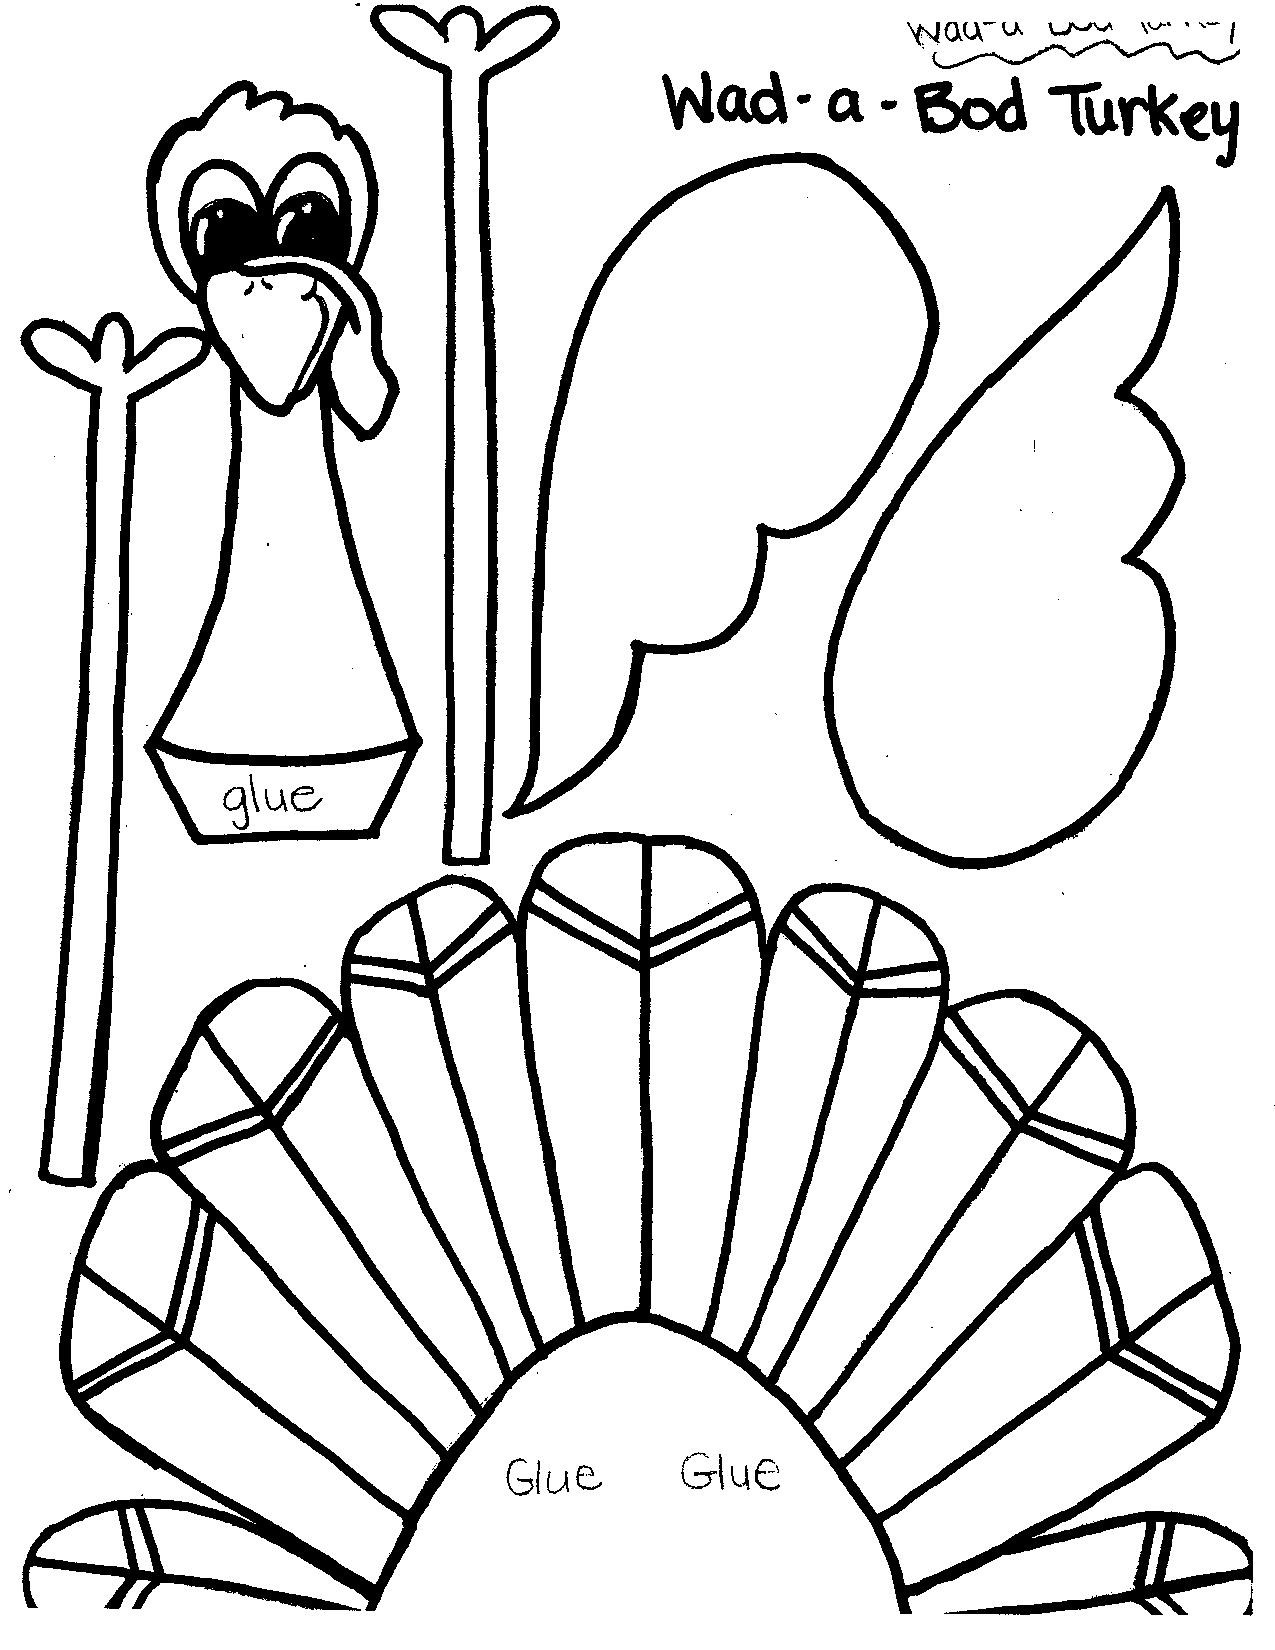 A Turkey For Thanksgiving Activities  Printable Thanksgiving Crafts and Activities for Kids